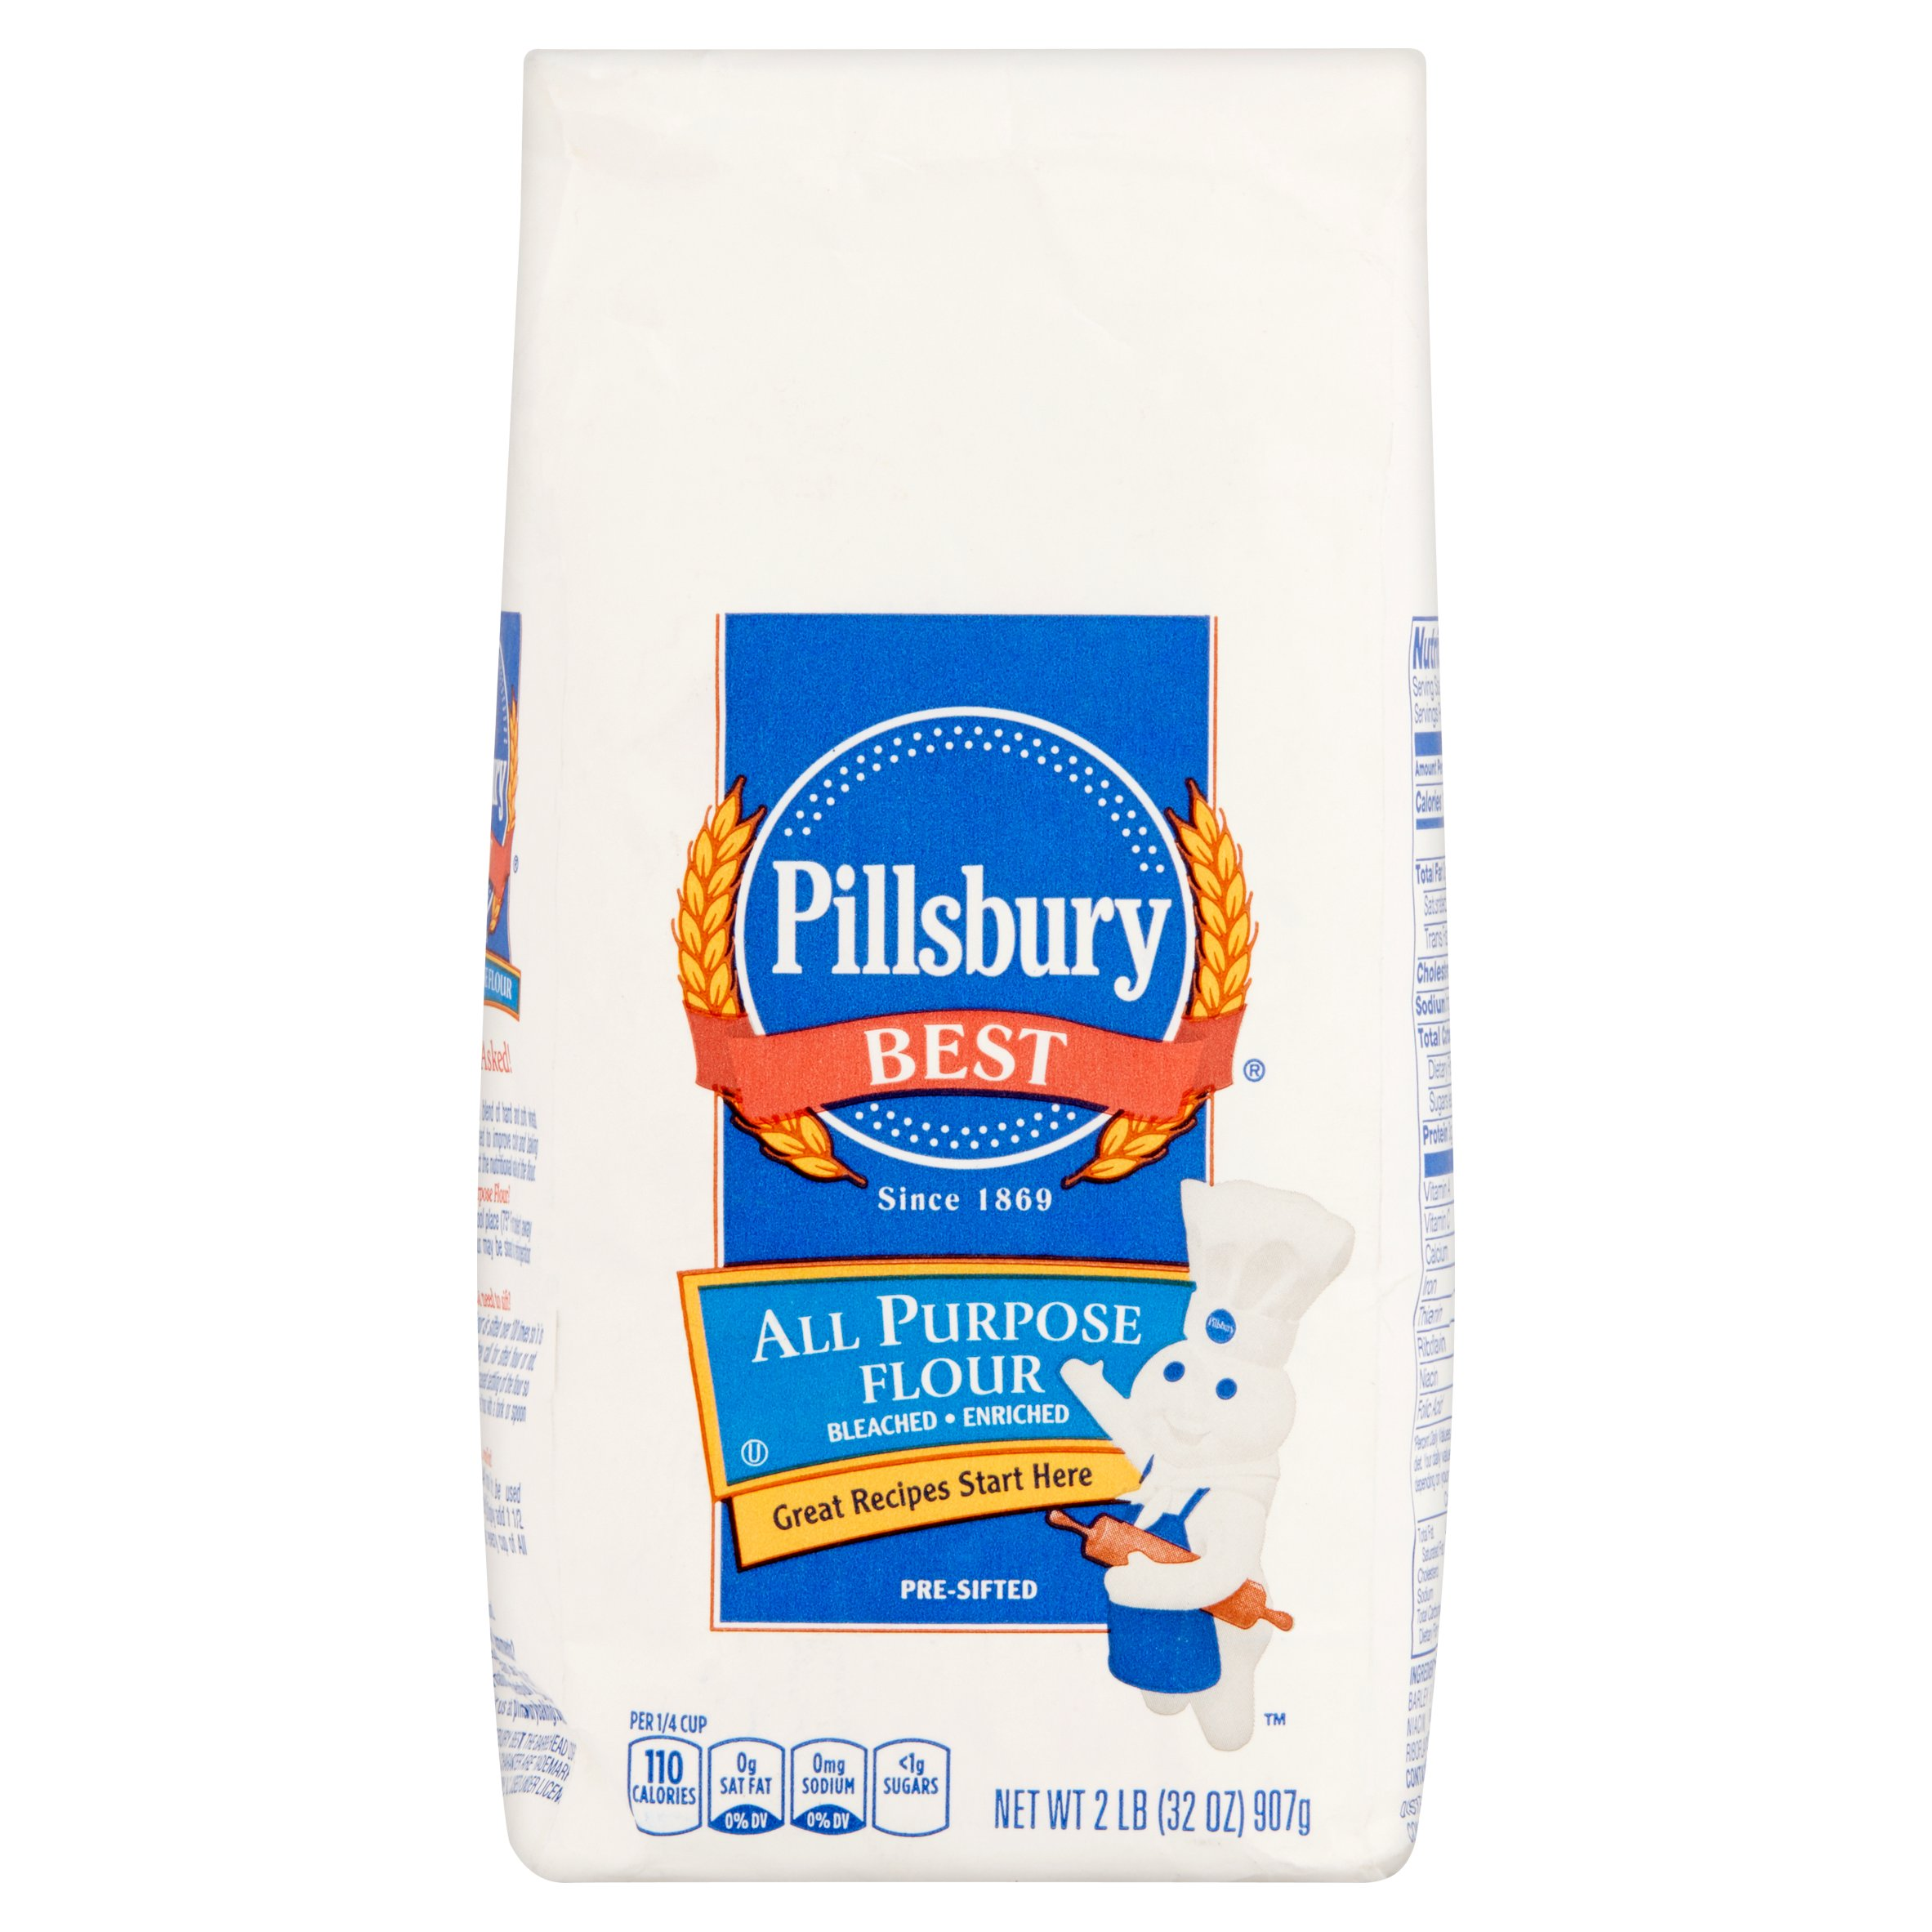 (4 Pack) Pillsbury Best Pre-Sifted All Purpose Flour, 2 lb